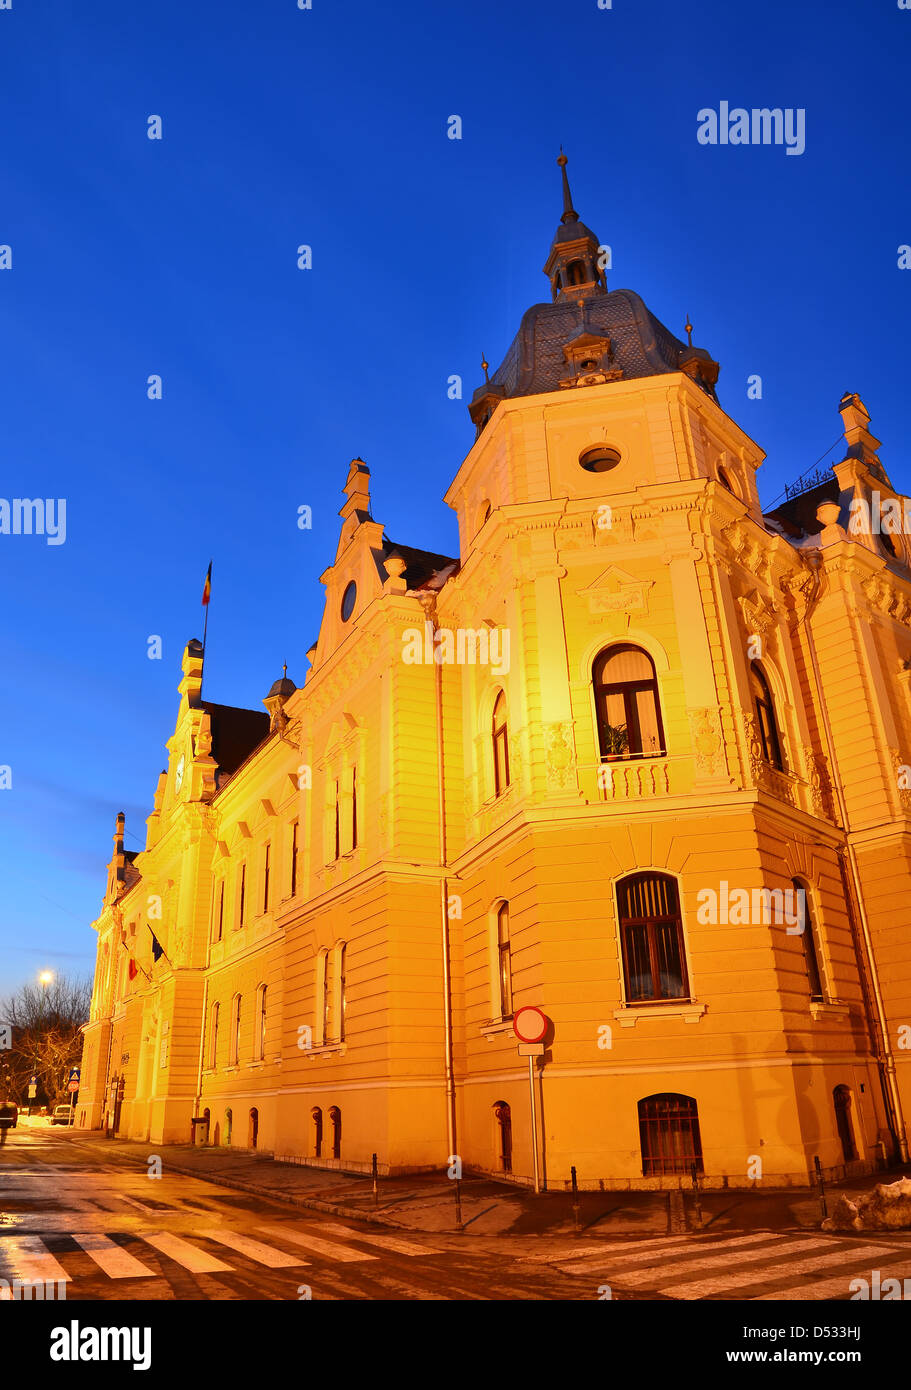 The cityhall of Brasov was built in XIXth century in Baroque Revival architecture style Stock Photo